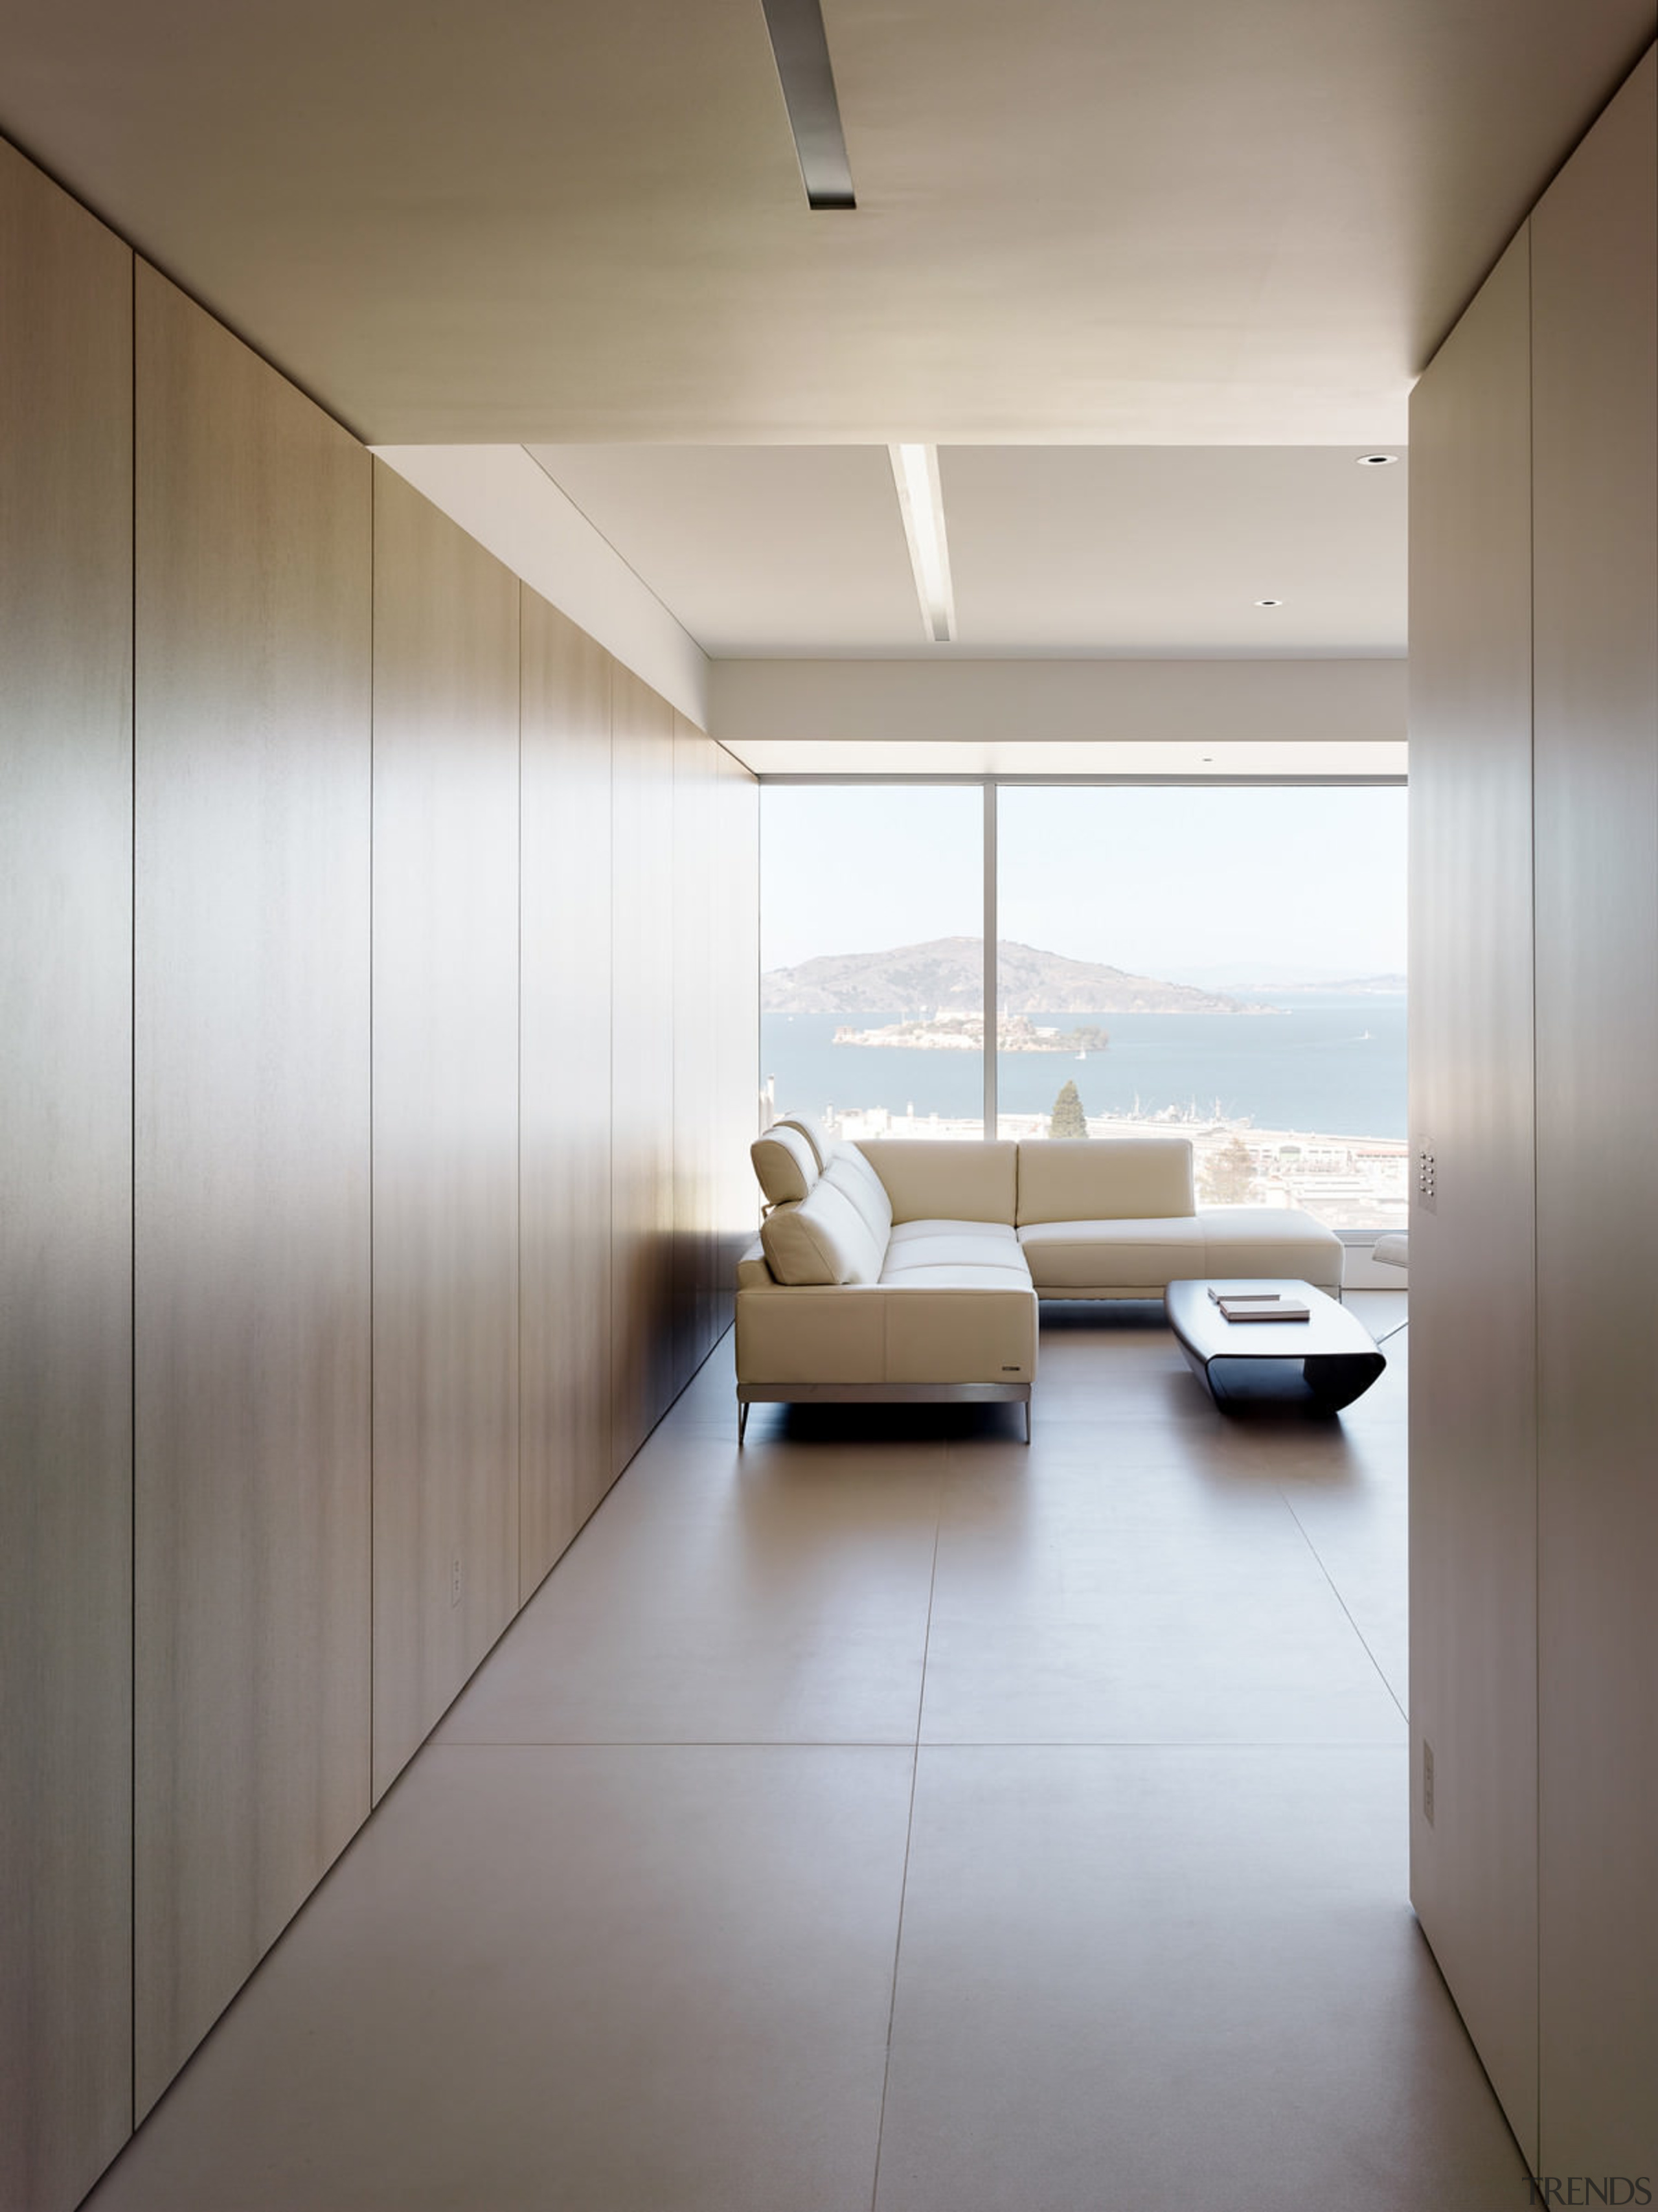 Looking out to the bay during the day architecture, ceiling, daylighting, floor, house, interior design, product design, wall, gray